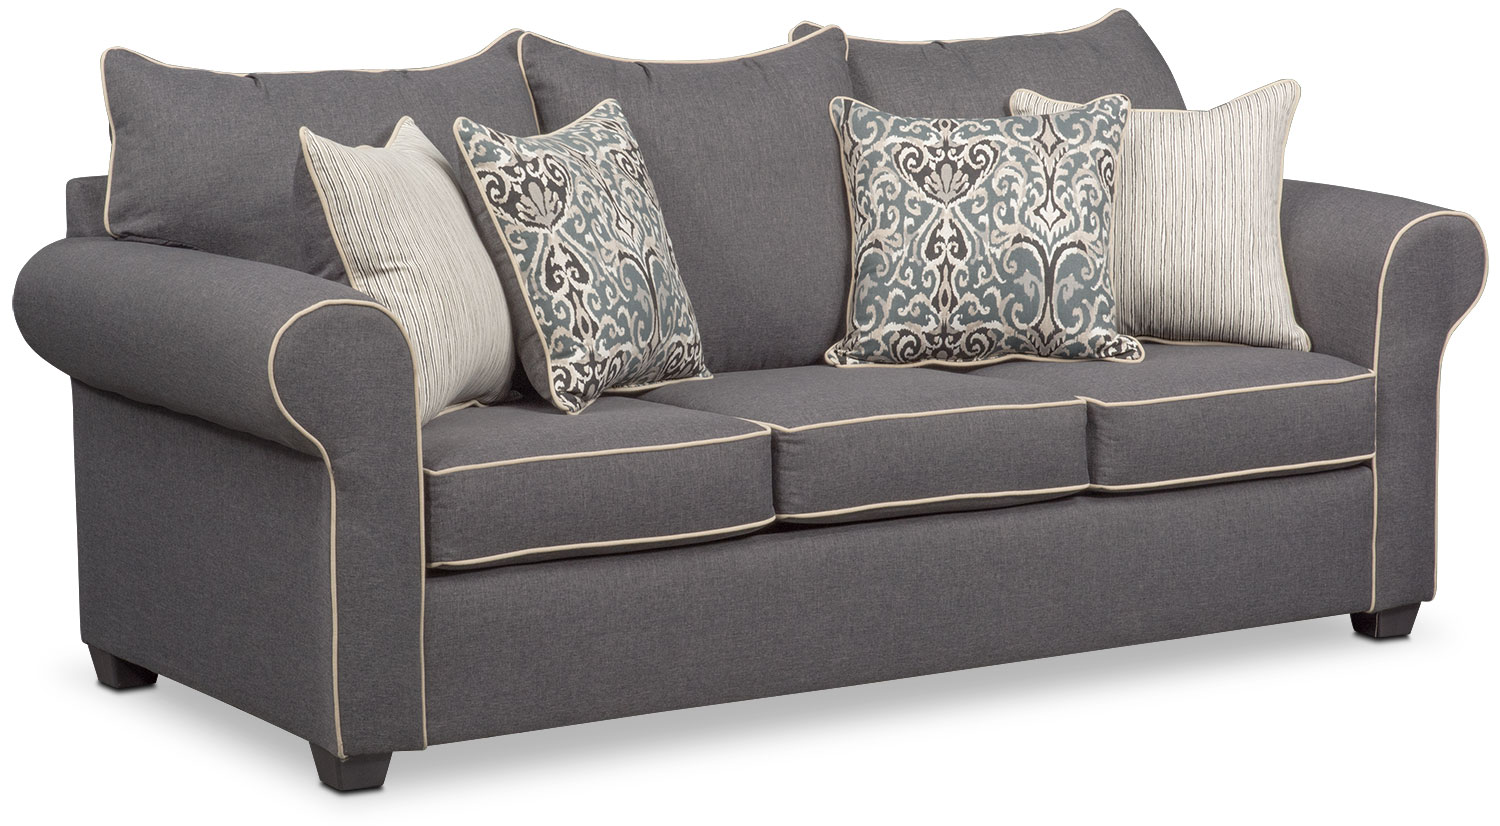 Sofa Furniture carla sofa - gray | value city furniture